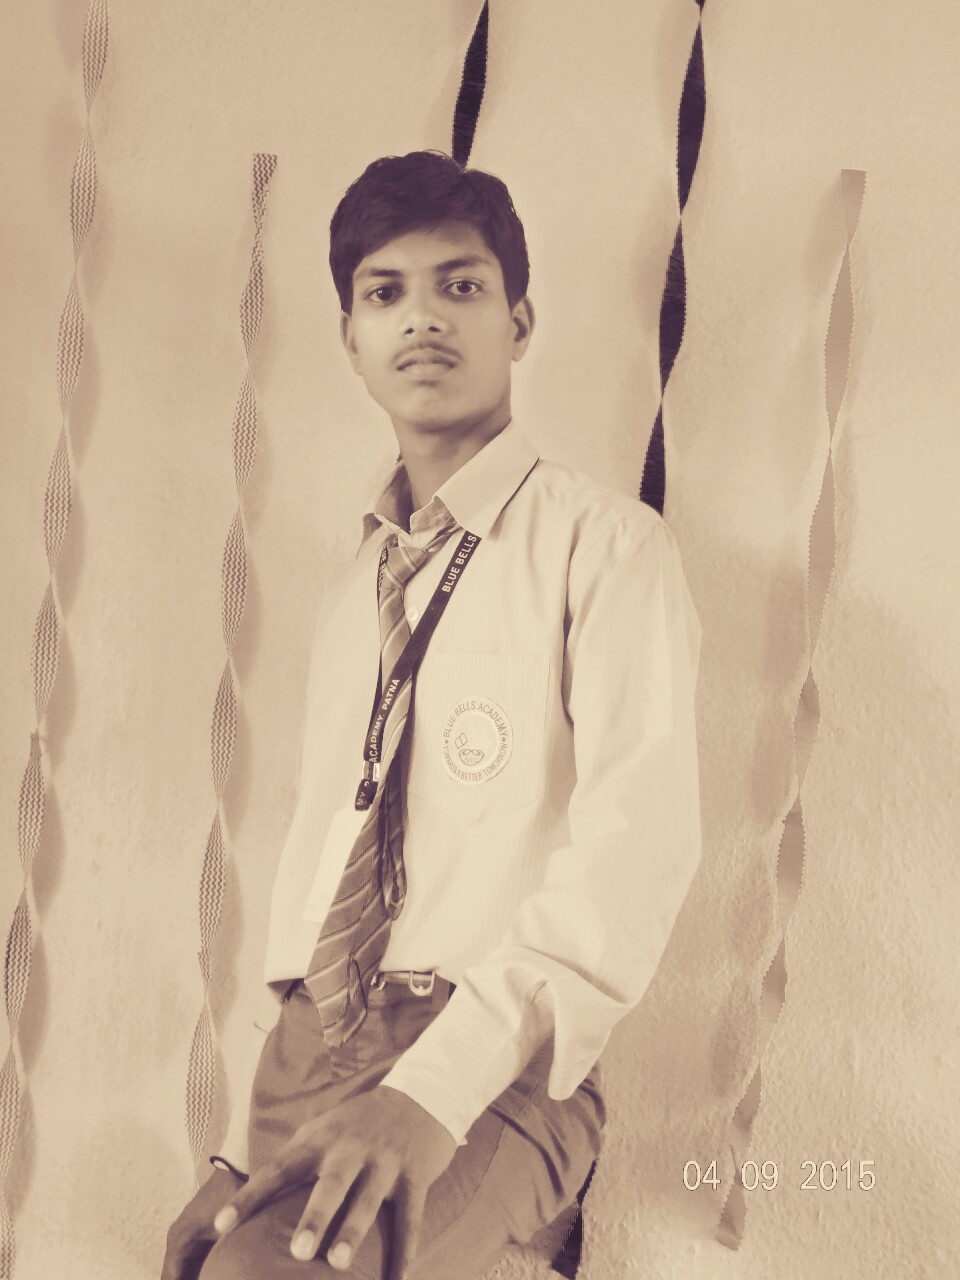 My picture